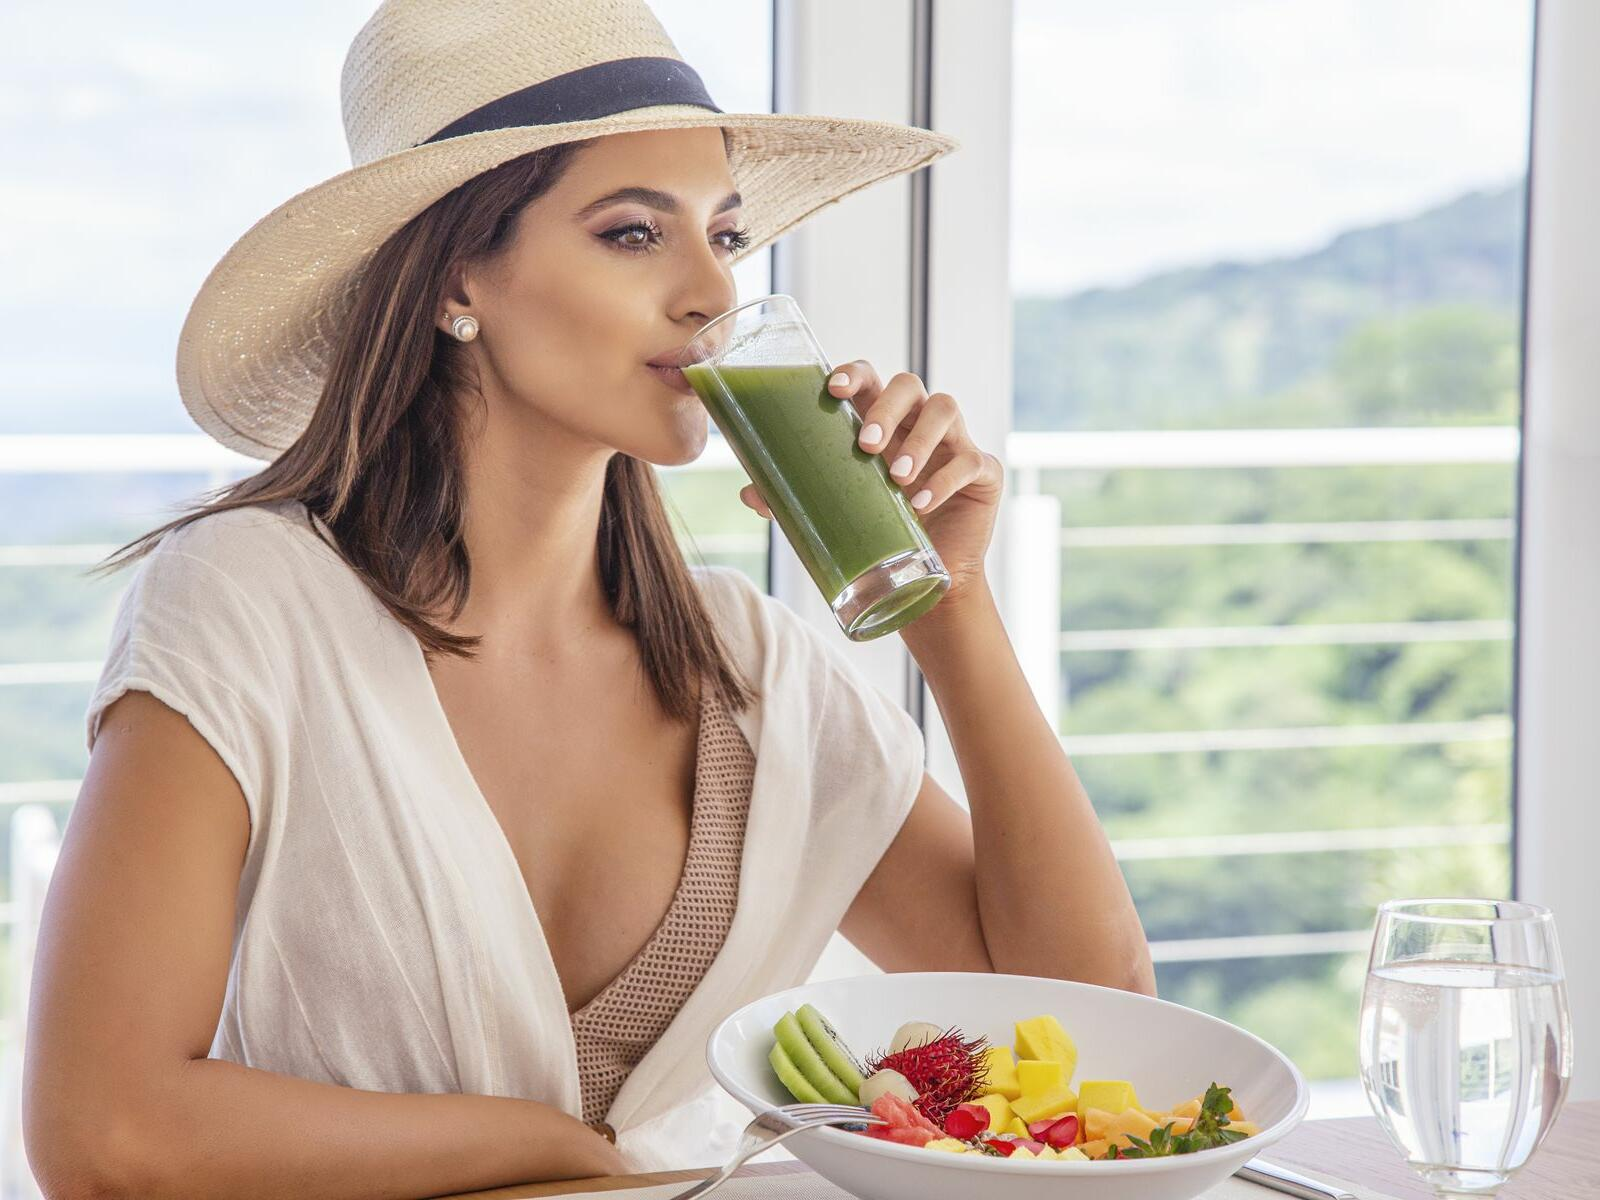 woman sipping juice at table